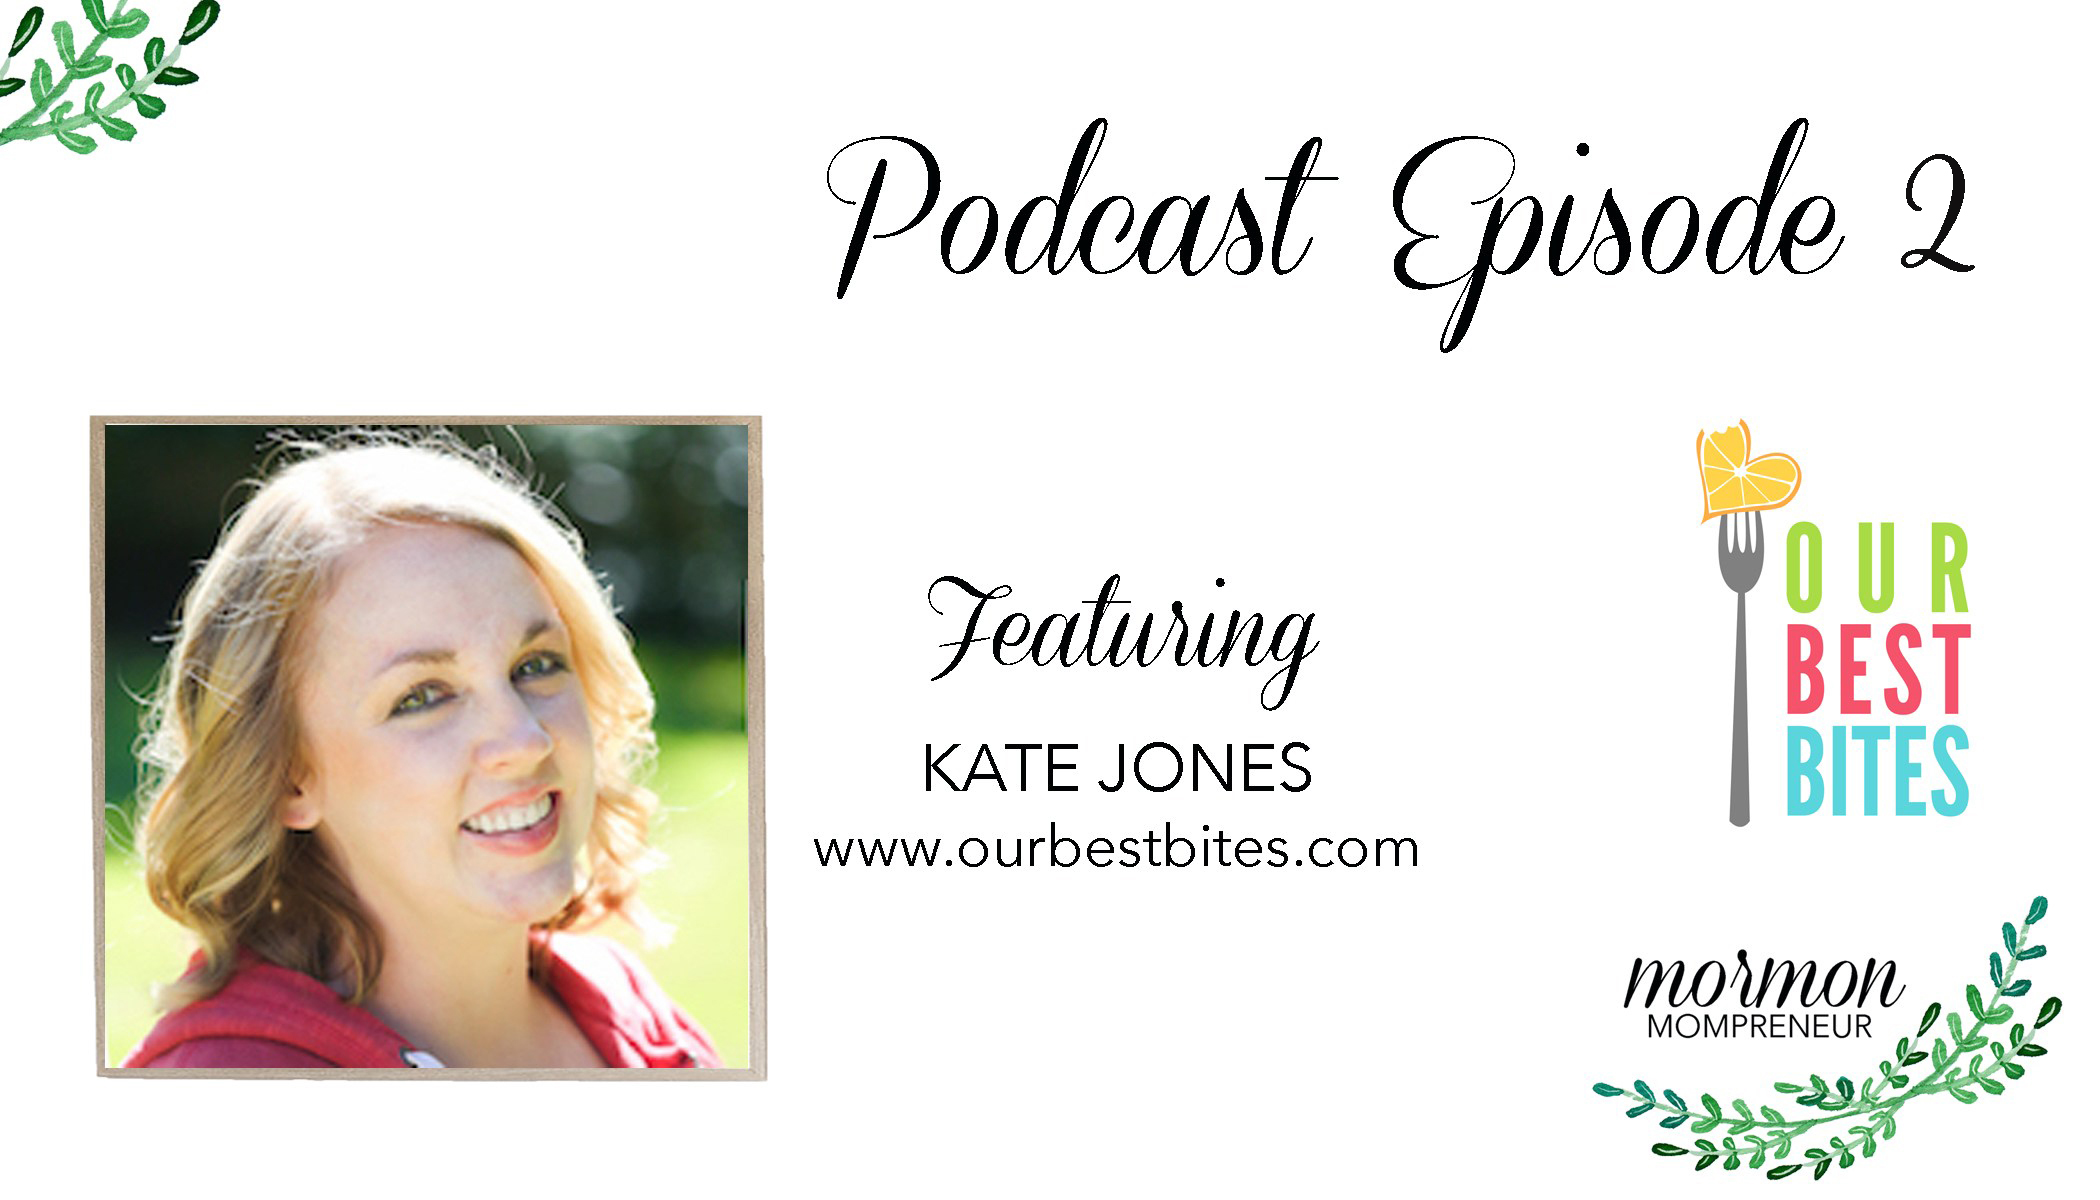 mormon mompreneur podcast episode 2 Kate Jones Our Best Bites